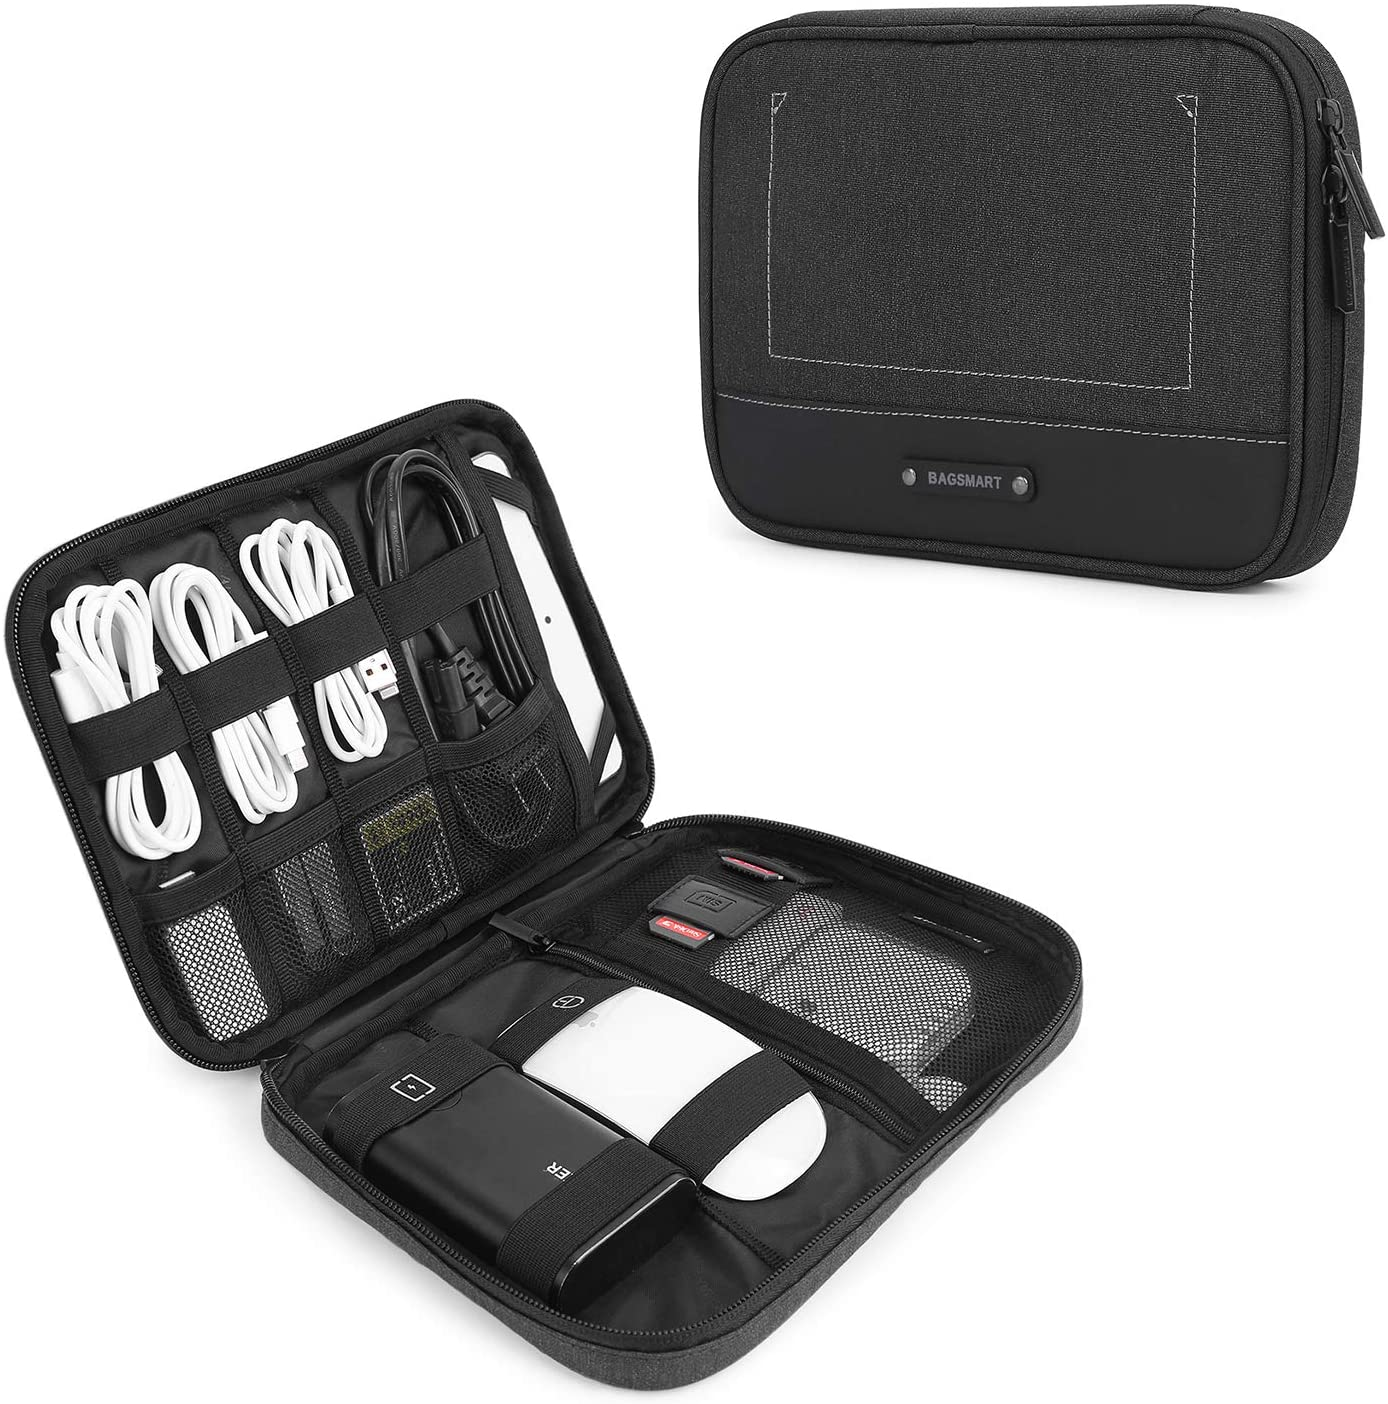 BAGSMART ELECTRONIC ORGANIZER TRAVEL CABLE ORGANIZER ELECTRONICS ACCESSORIES CASES FOR 7.9\u2019\u2019 IPAD MINI CABLES CHARGERS USB SD CARD